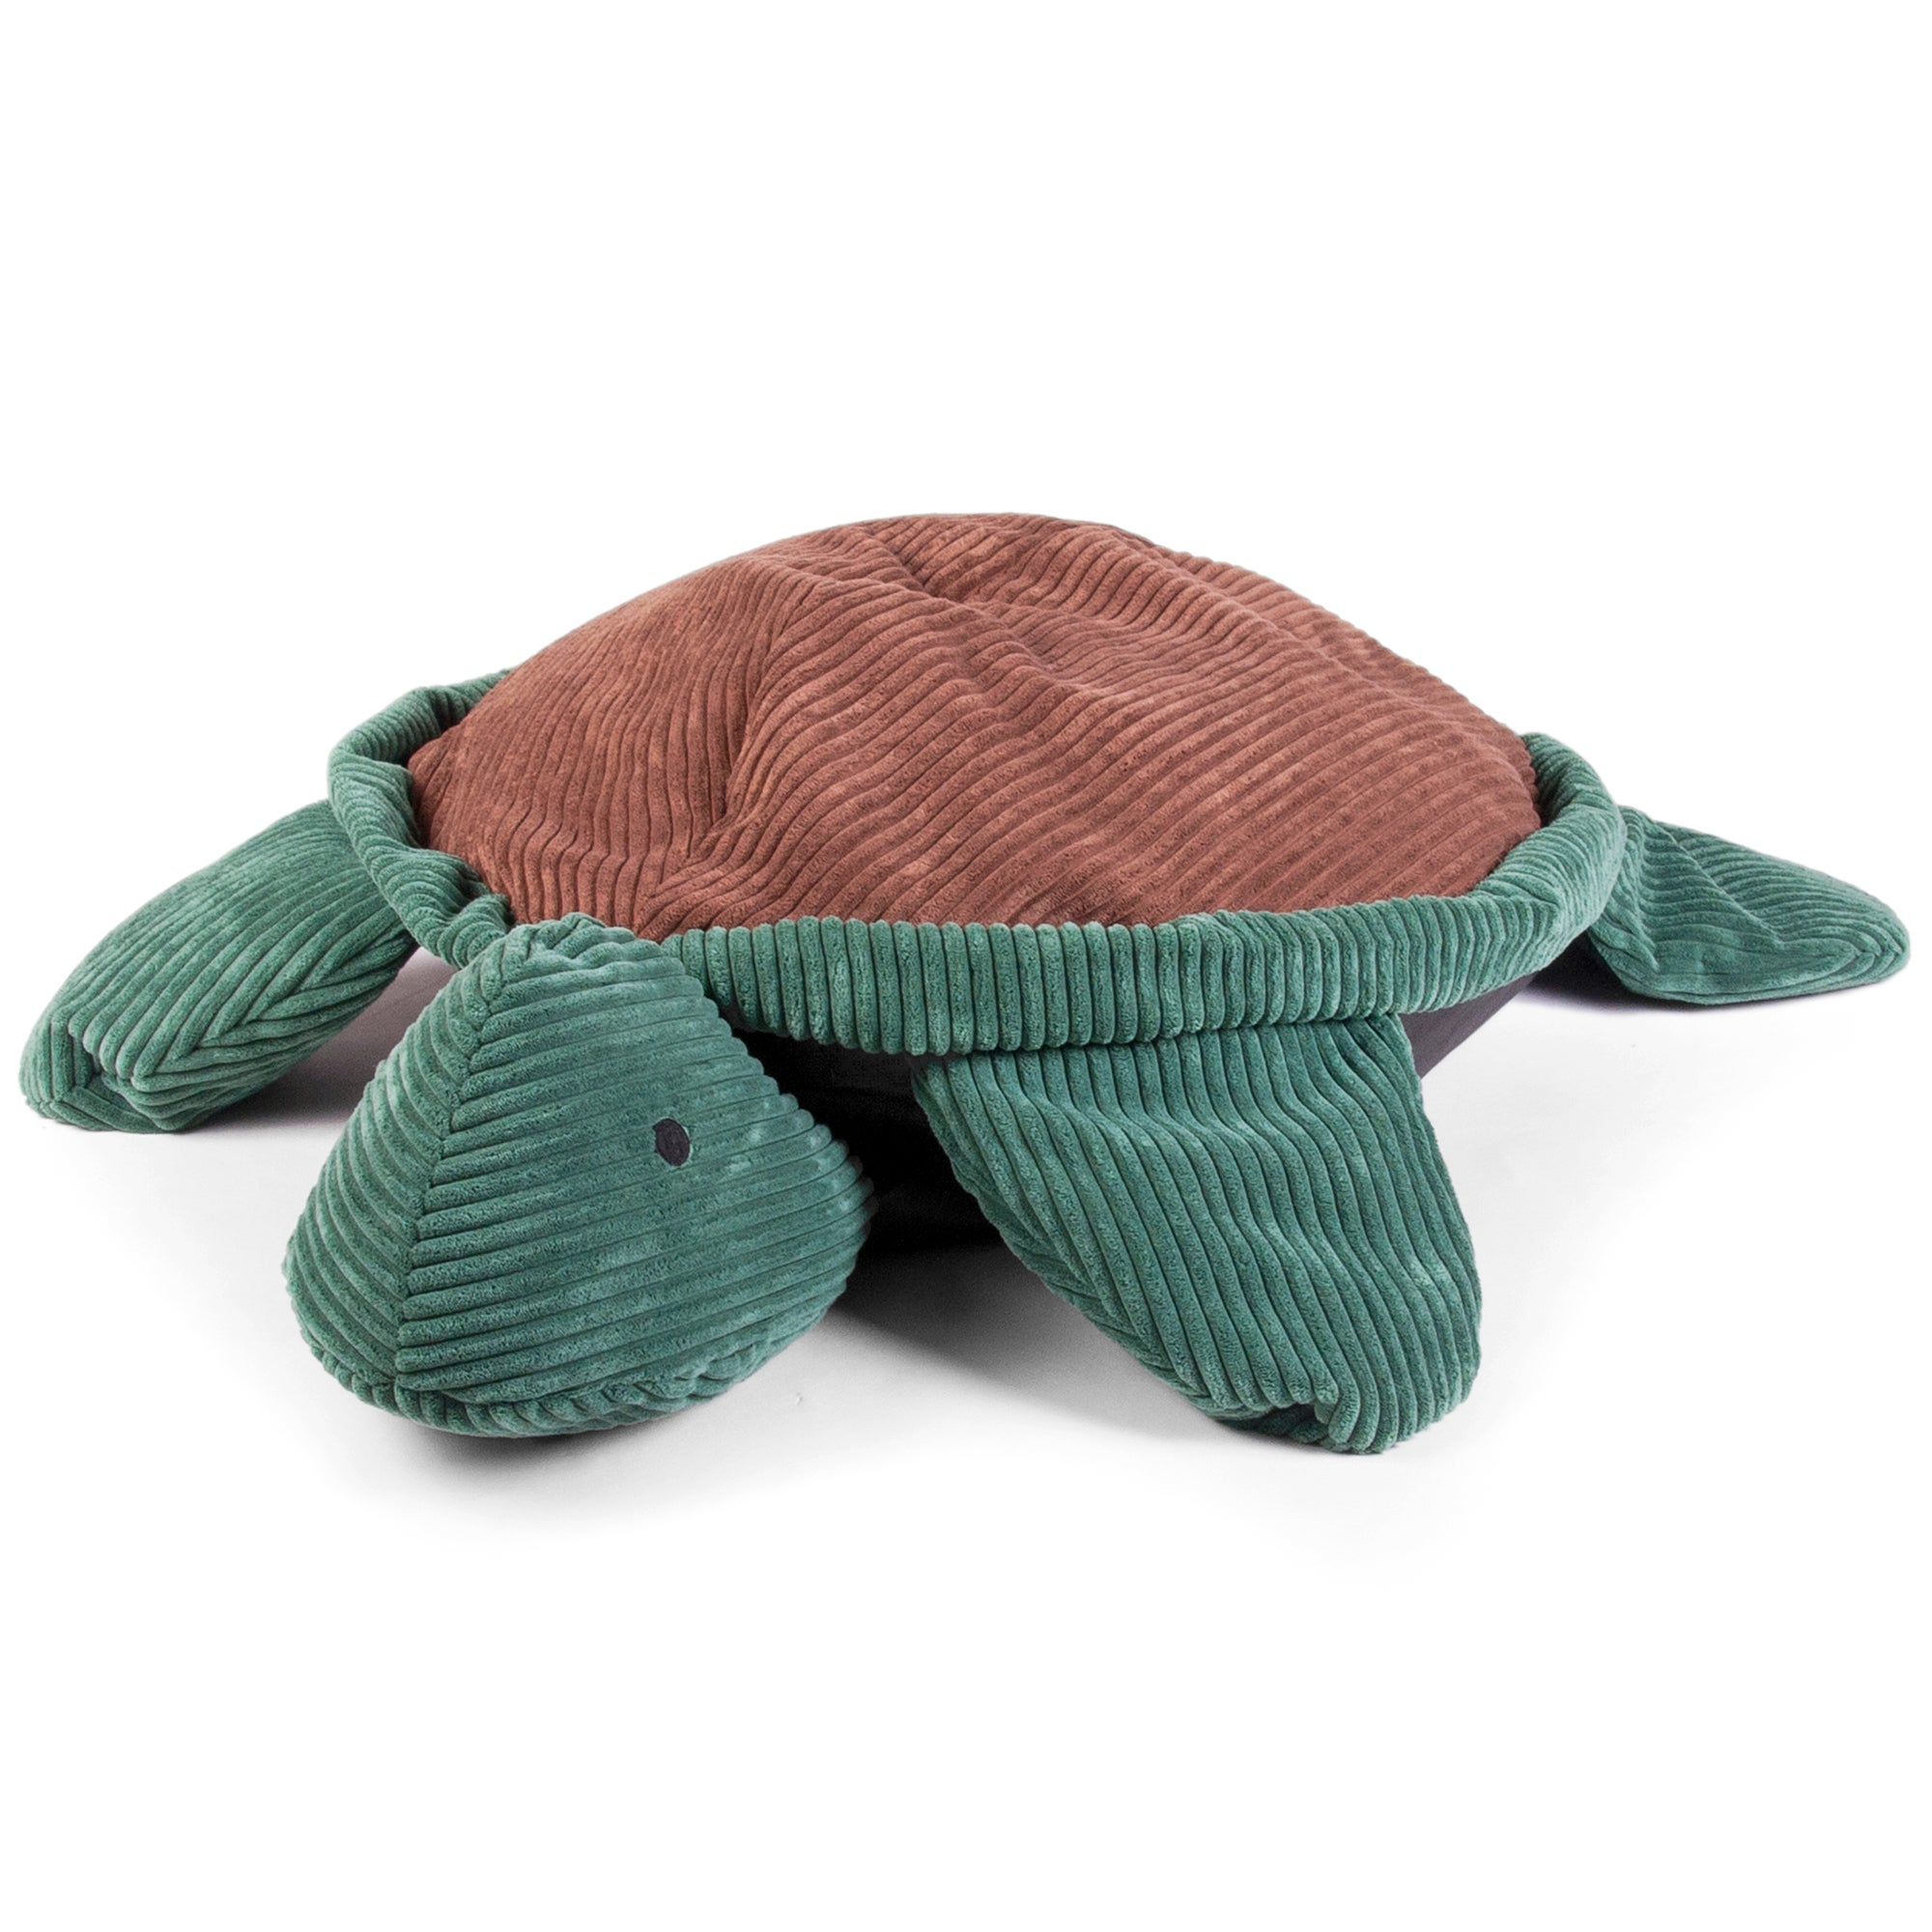 Green Turtle Bean Bag